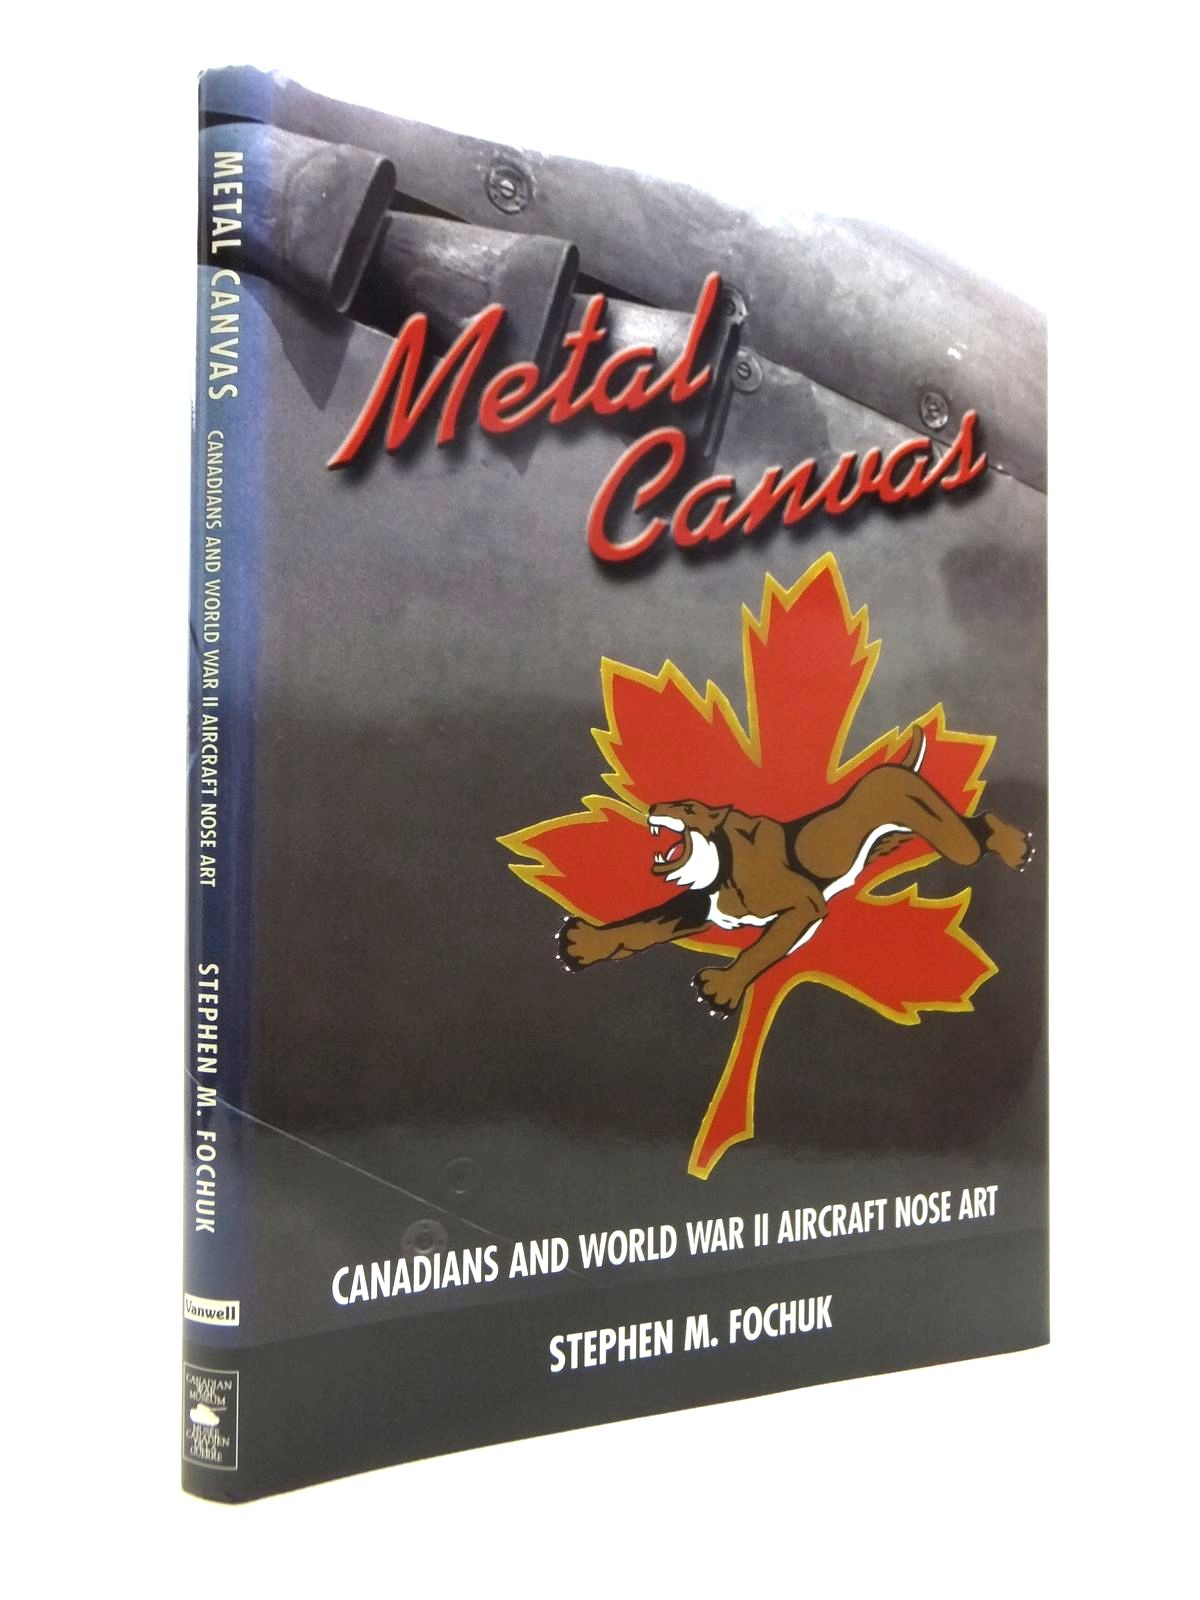 Photo of METAL CANVAS CANADIANS AND WORLD WAR II AIRCRAFT NOSE ART written by Fochuk, Stephen M. published by Vanwell Publishing Limited (STOCK CODE: 1812255)  for sale by Stella & Rose's Books